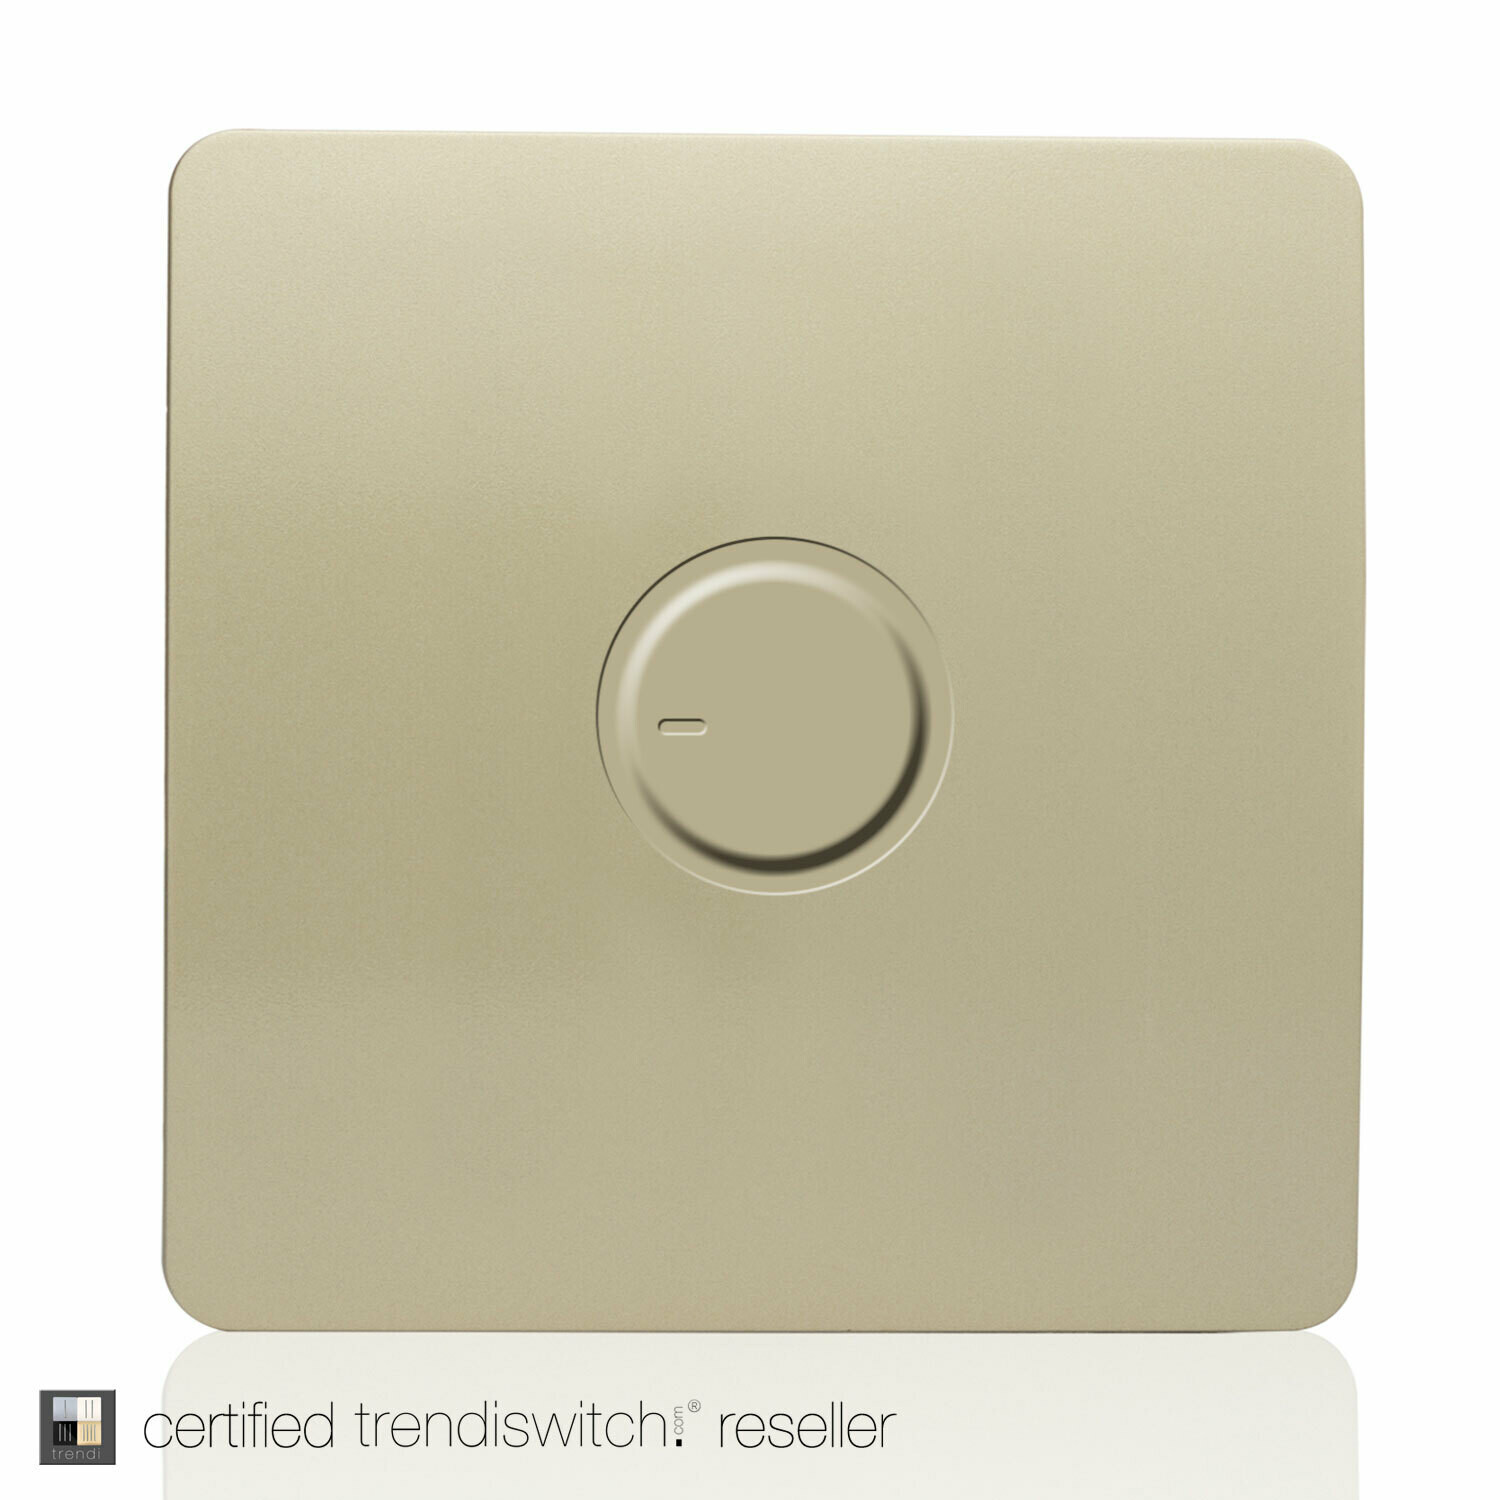 Trendi, Artistic Modern 1 Gang 1 Way Dimmer Switch, 200W Load Led Compatable Champagne Gold Finish, BRITISH MADE, 5yrs warranty